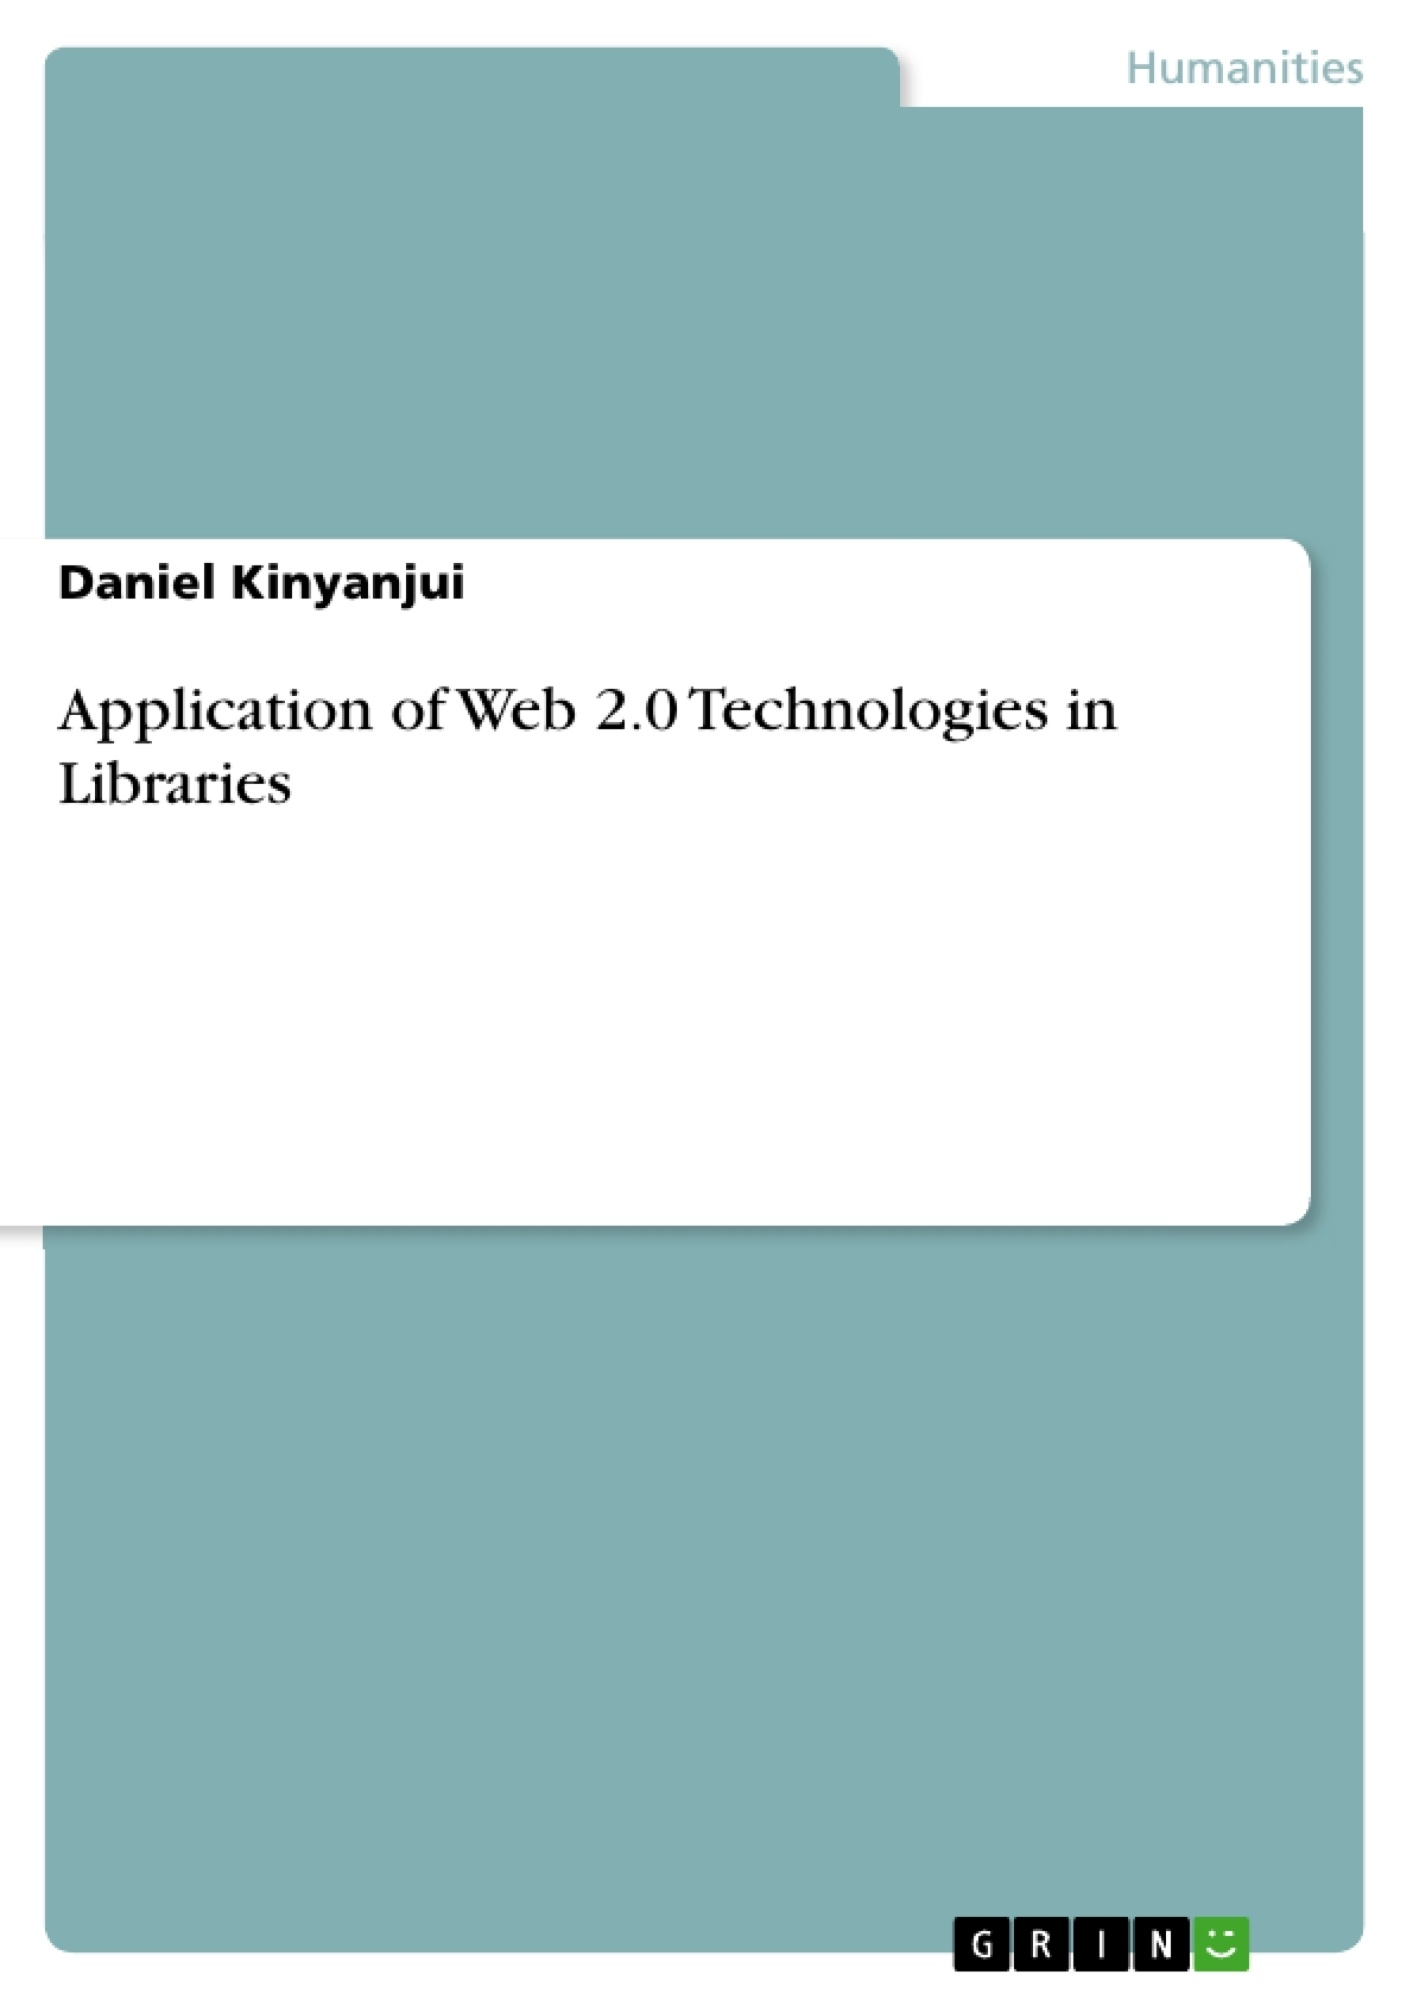 Title: Application of Web 2.0 Technologies in Libraries